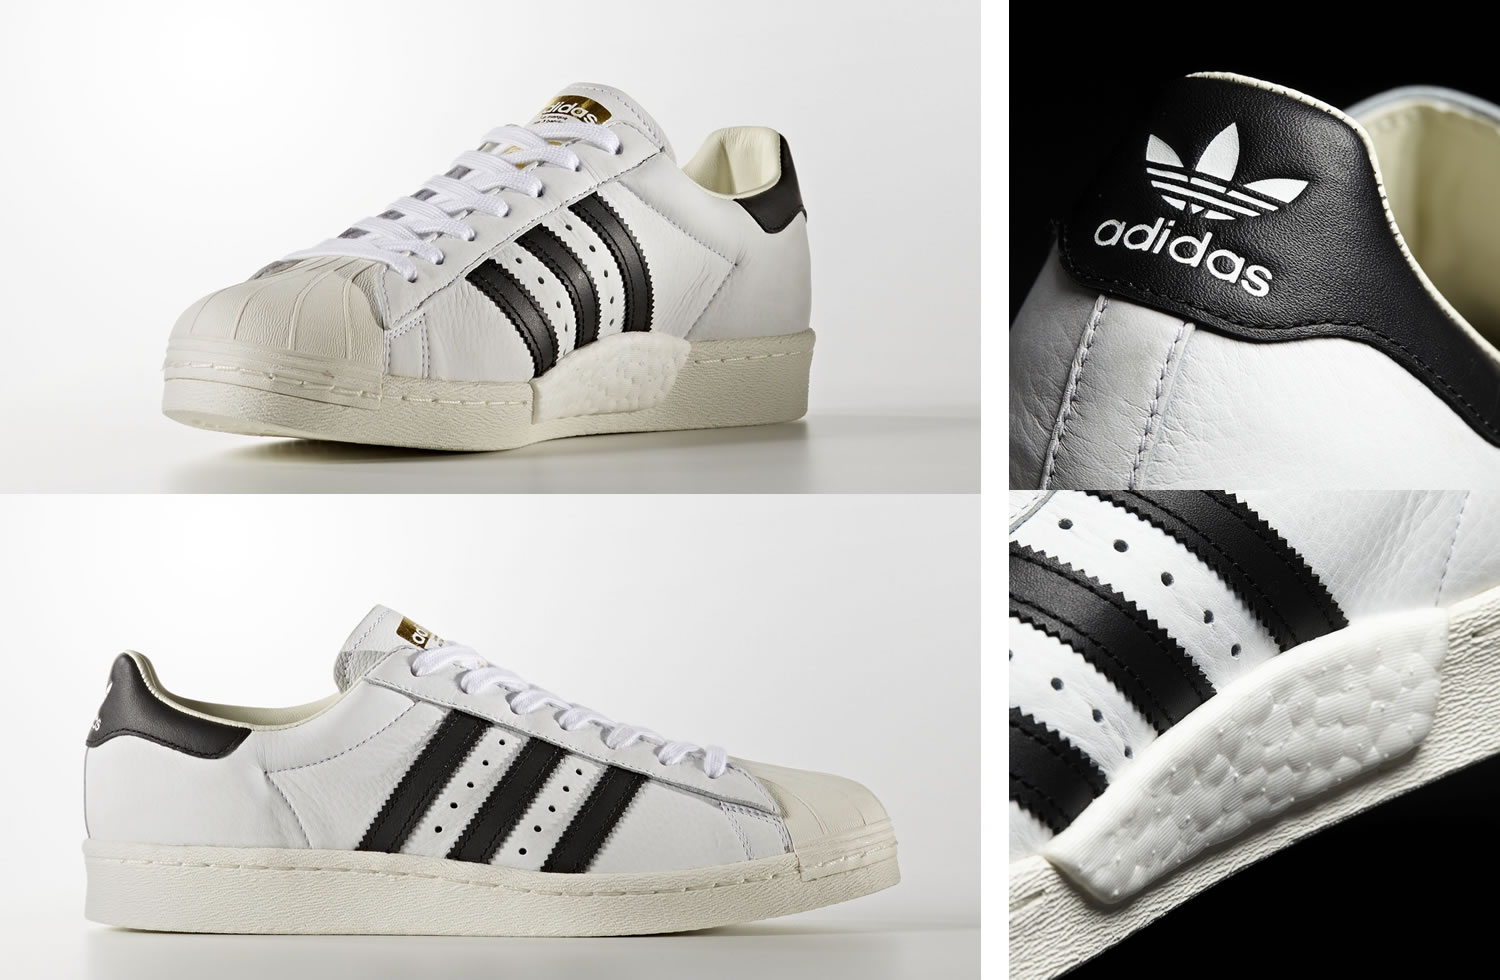 Adidas Superstar Boost Trainers | Men's Fashion